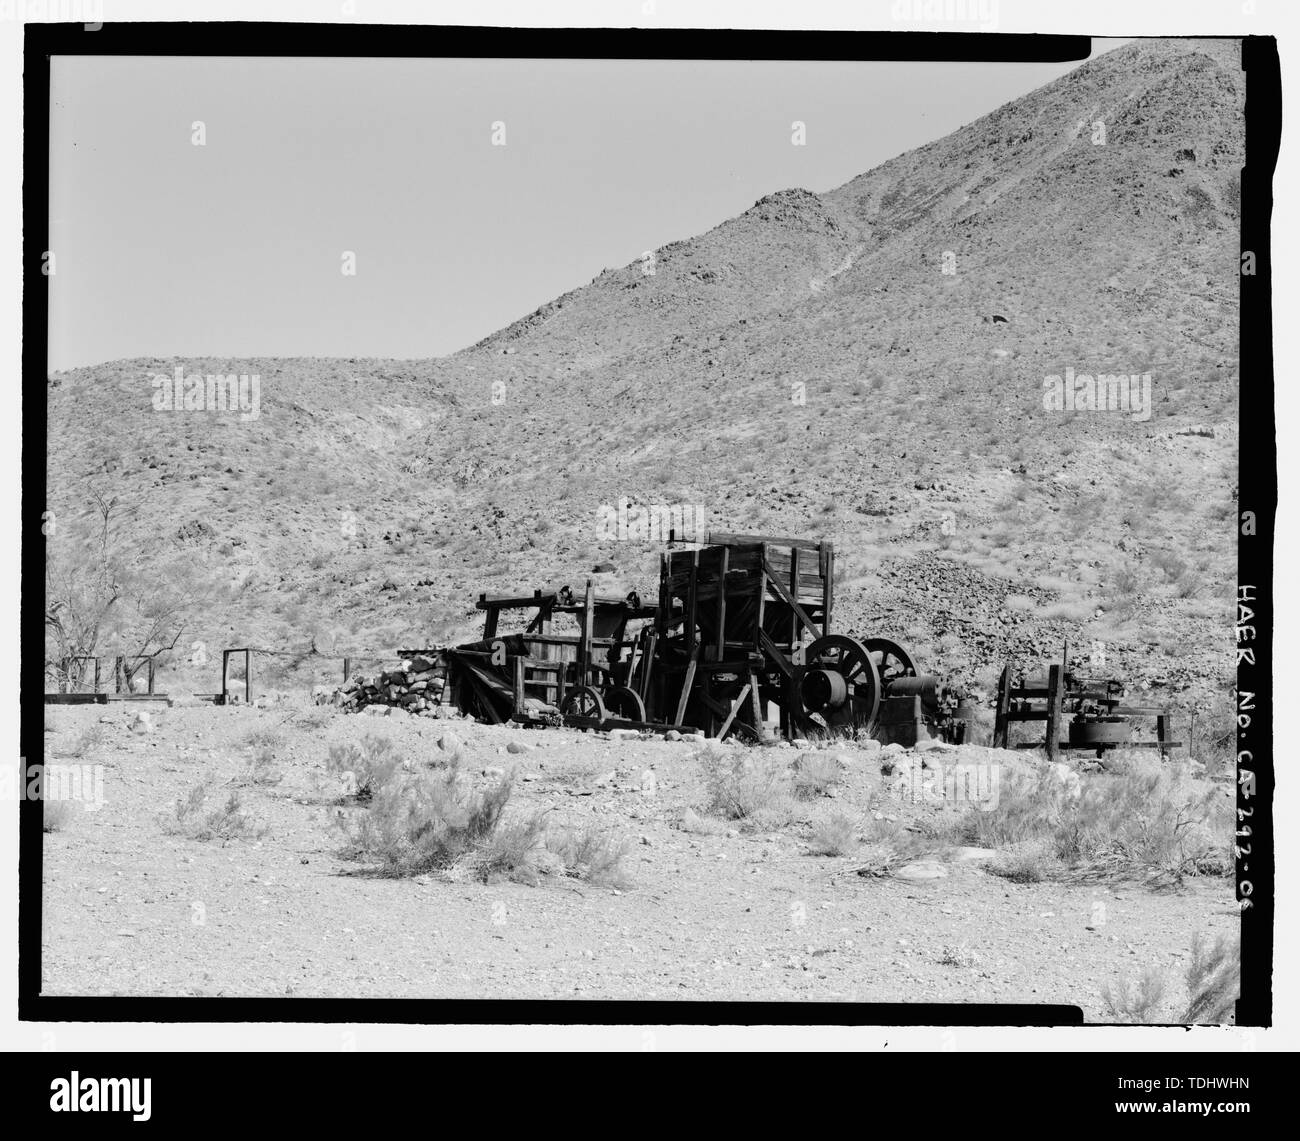 OVERVIEW OF GOLD HILL MILL, LOOKING NORTH. THE ARRASTRA IS ON THE RIGHT, TO THE LEFT OF THE ENGINE. - Gold Hill Mill, Warm Spring Canyon Road, Death Valley Junction, Inyo County, CA - Stock Image